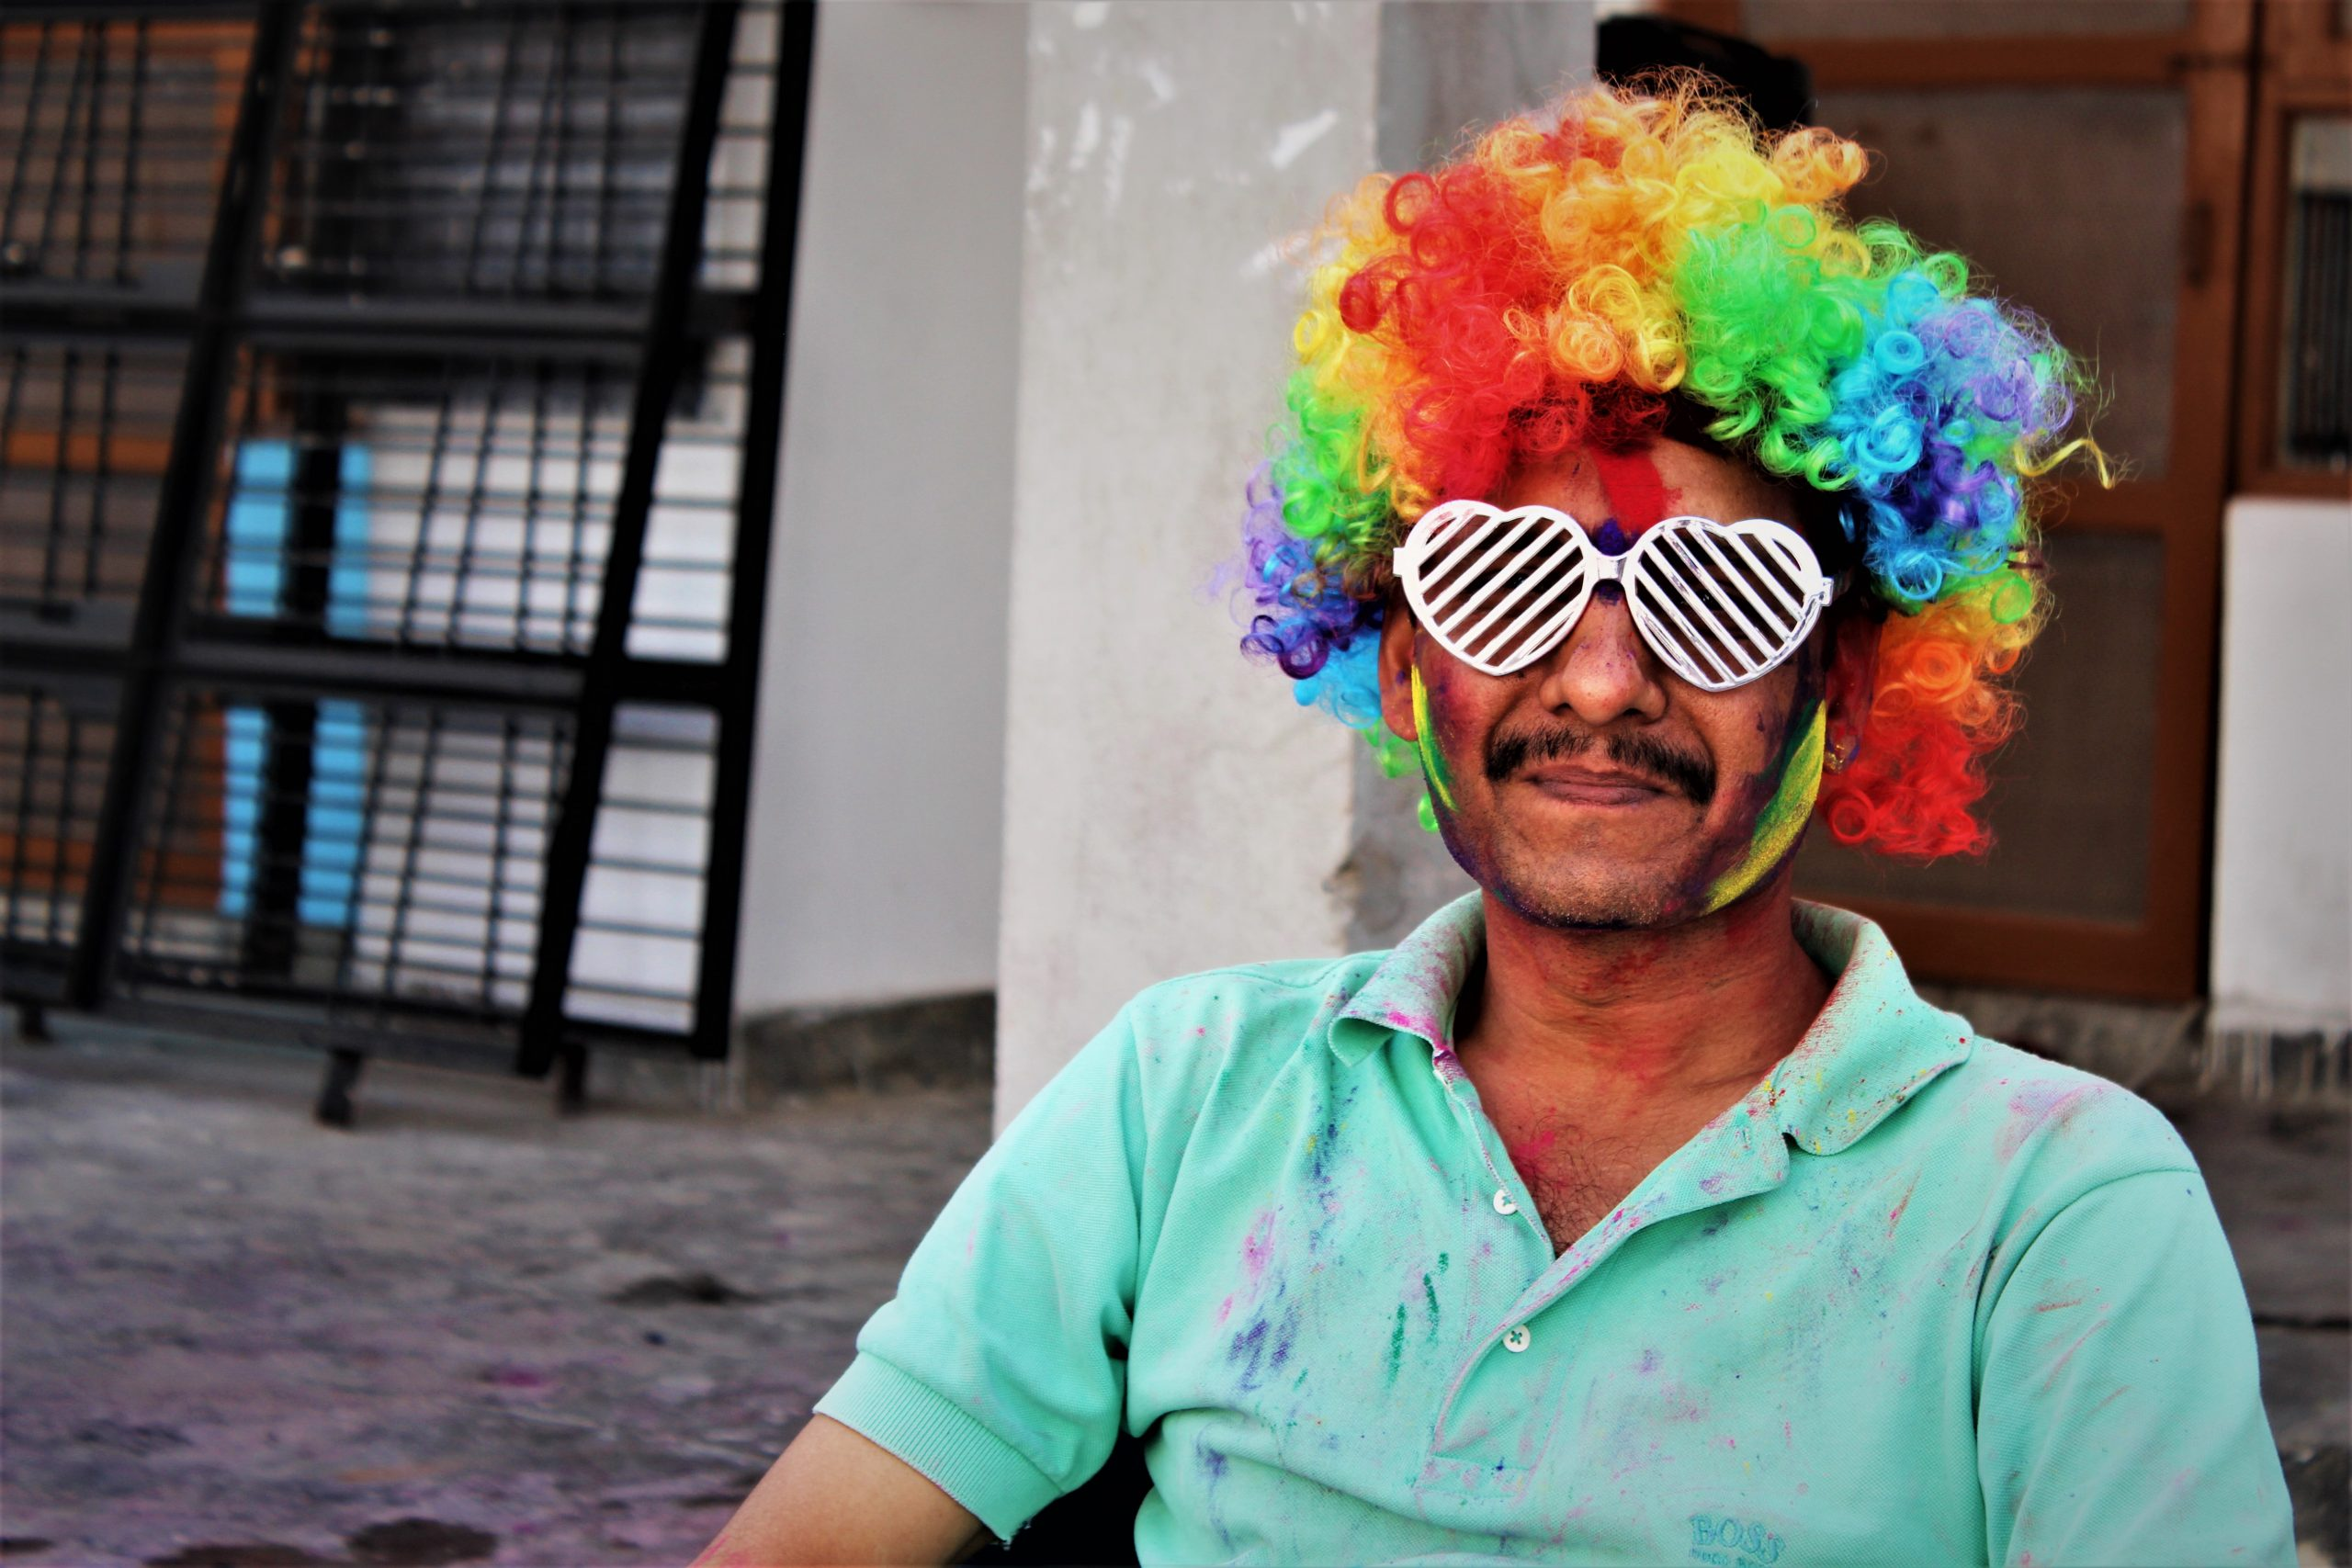 A man with artificial multicolor hair